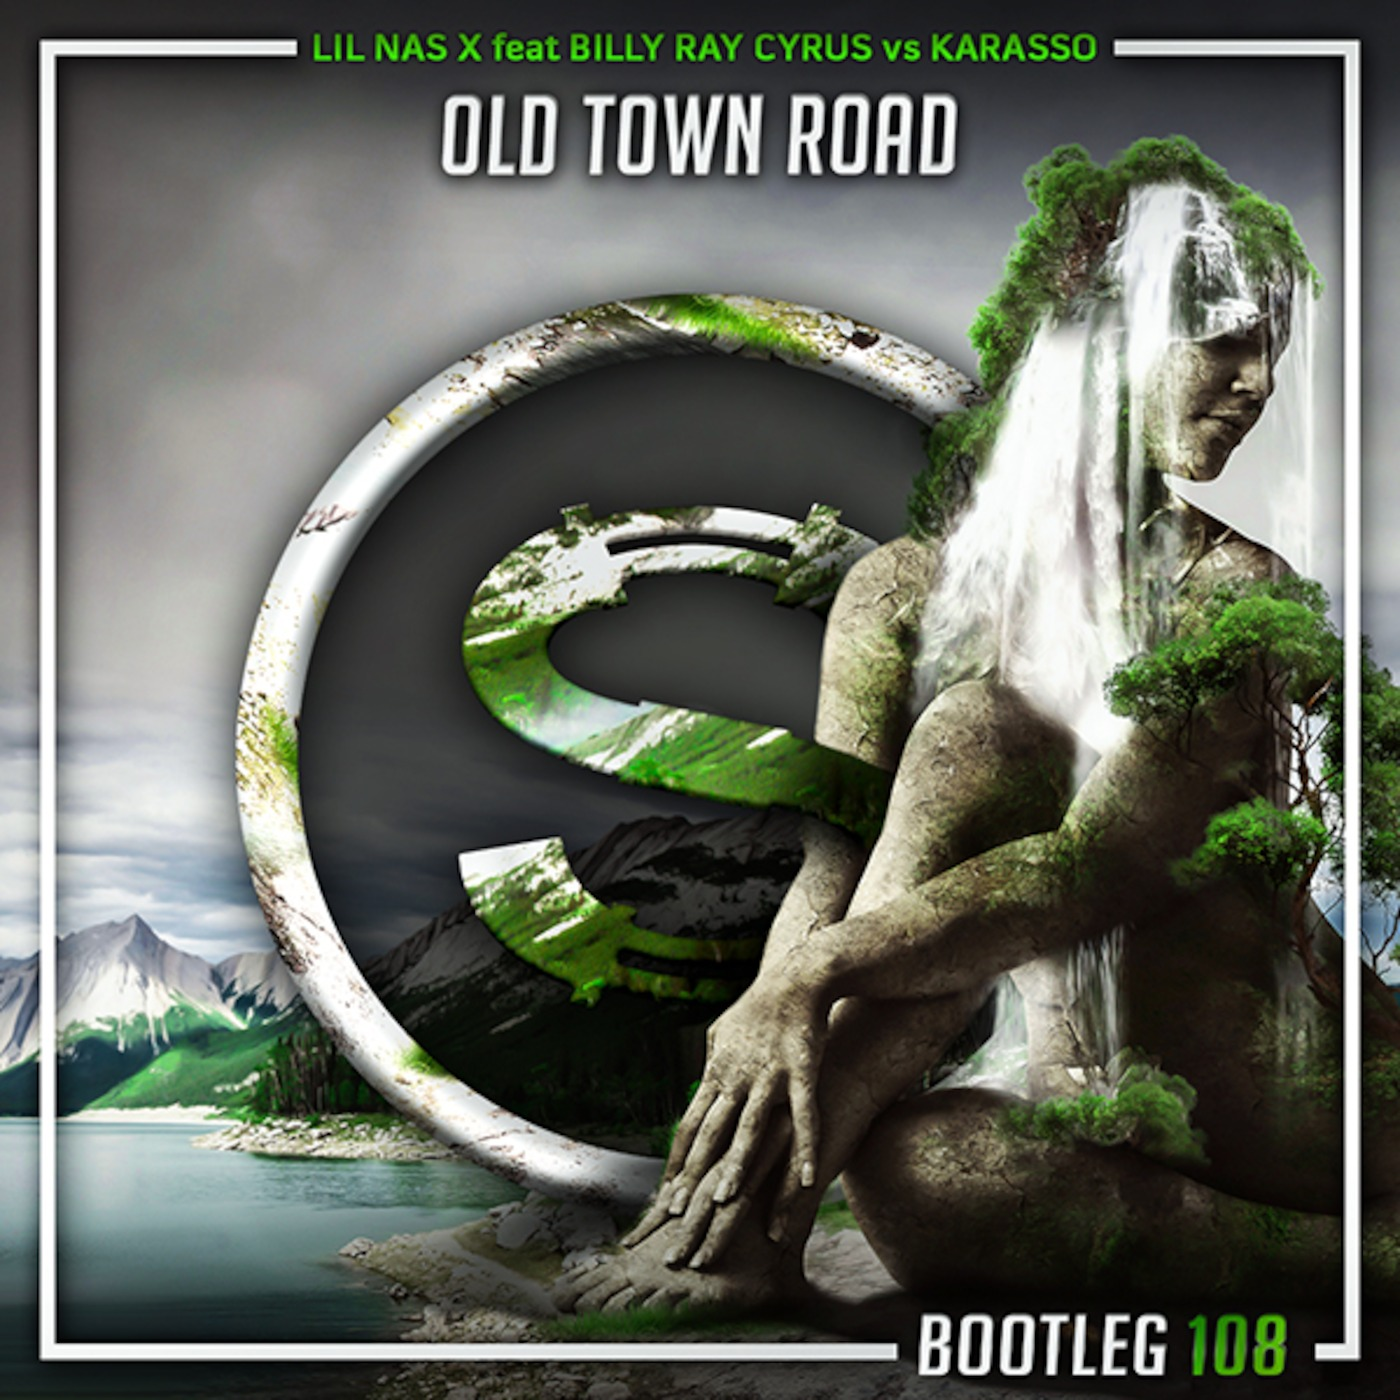 Lil Nas X feat Billy Ray Cyrus vs Karasso - Old Town Road (Da Sylva bootleg)